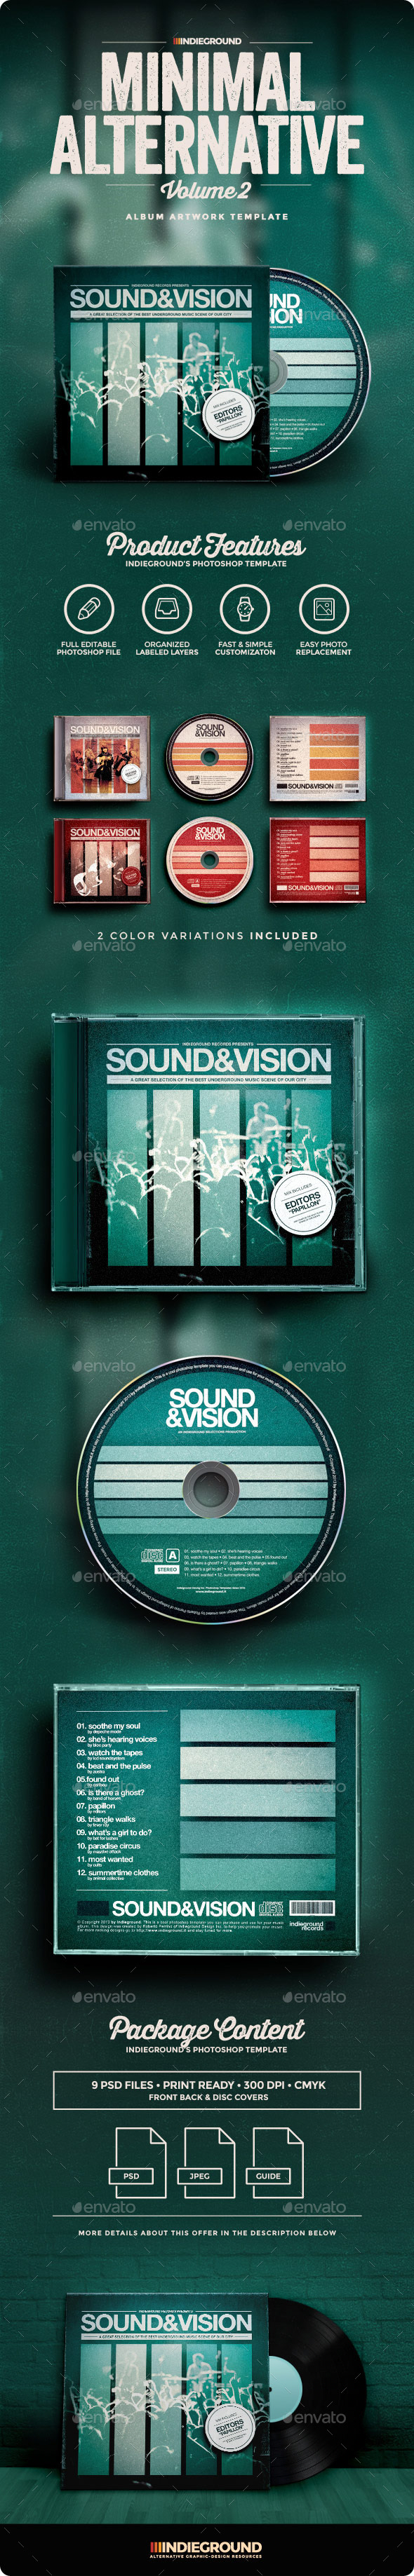 Minimal Alternative CD Album Artwork Vol. 2 - CD & DVD Artwork Print Templates